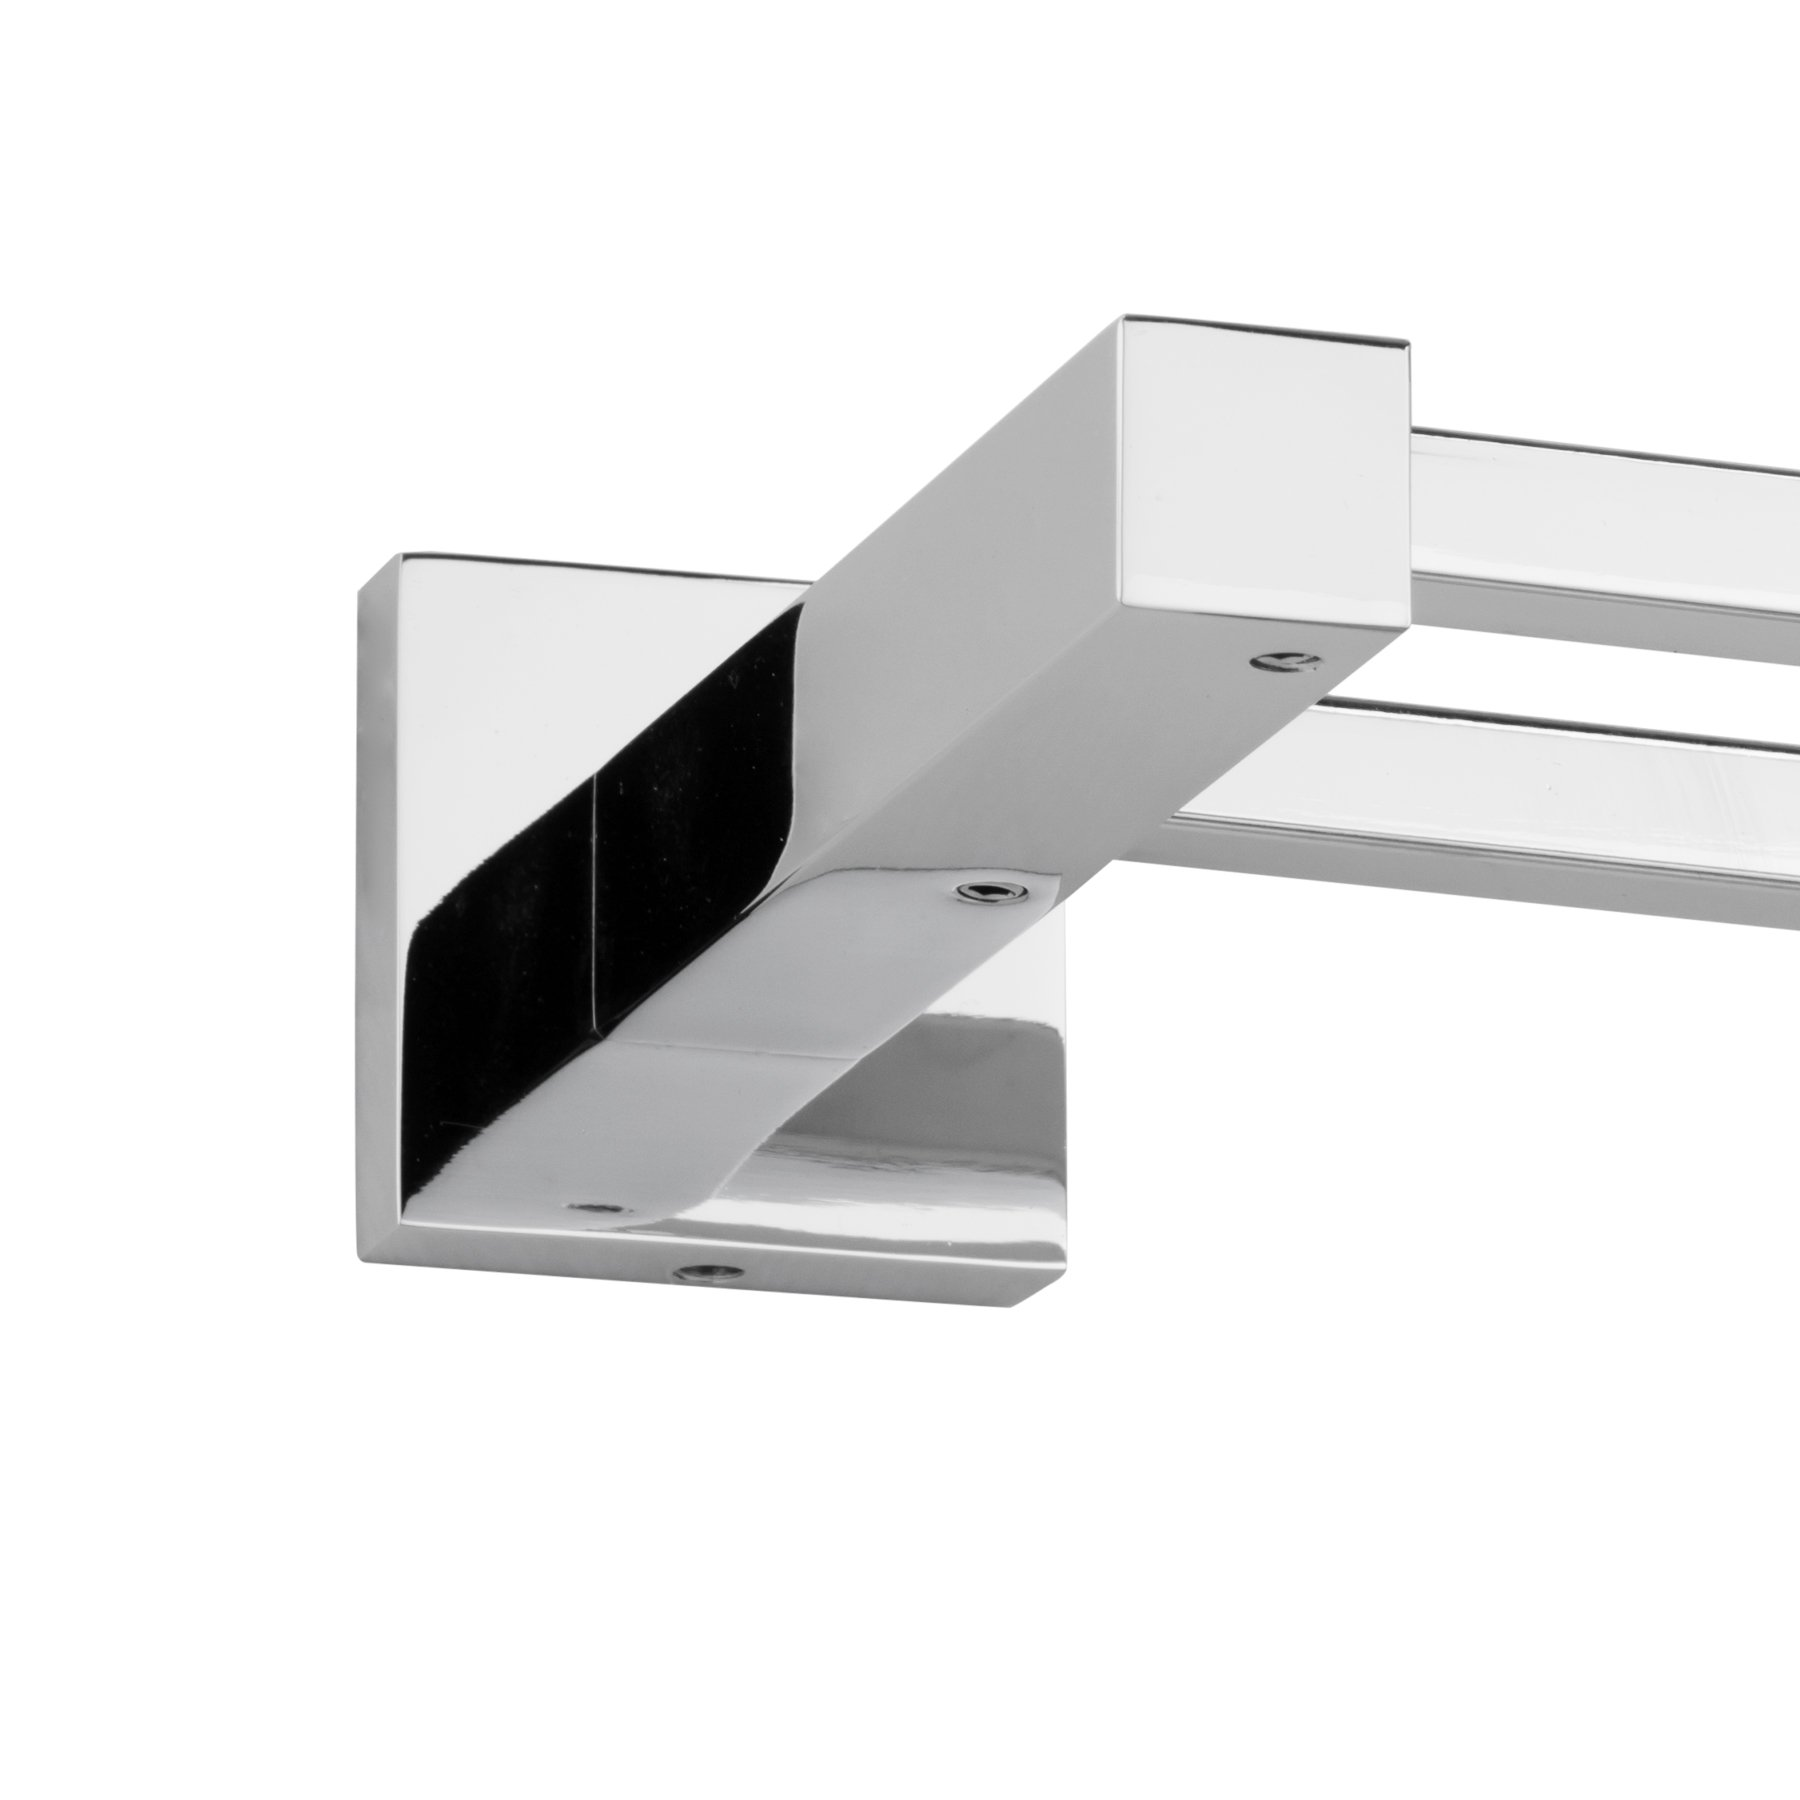 MAYKKE Zane 25'' Stainless Steel Double Towel Bar | Modern Wall Mounted Towel Holder for Bathroom, Kitchen, Shower | Polished Chrome, XYA1000901 by Maykke (Image #1)